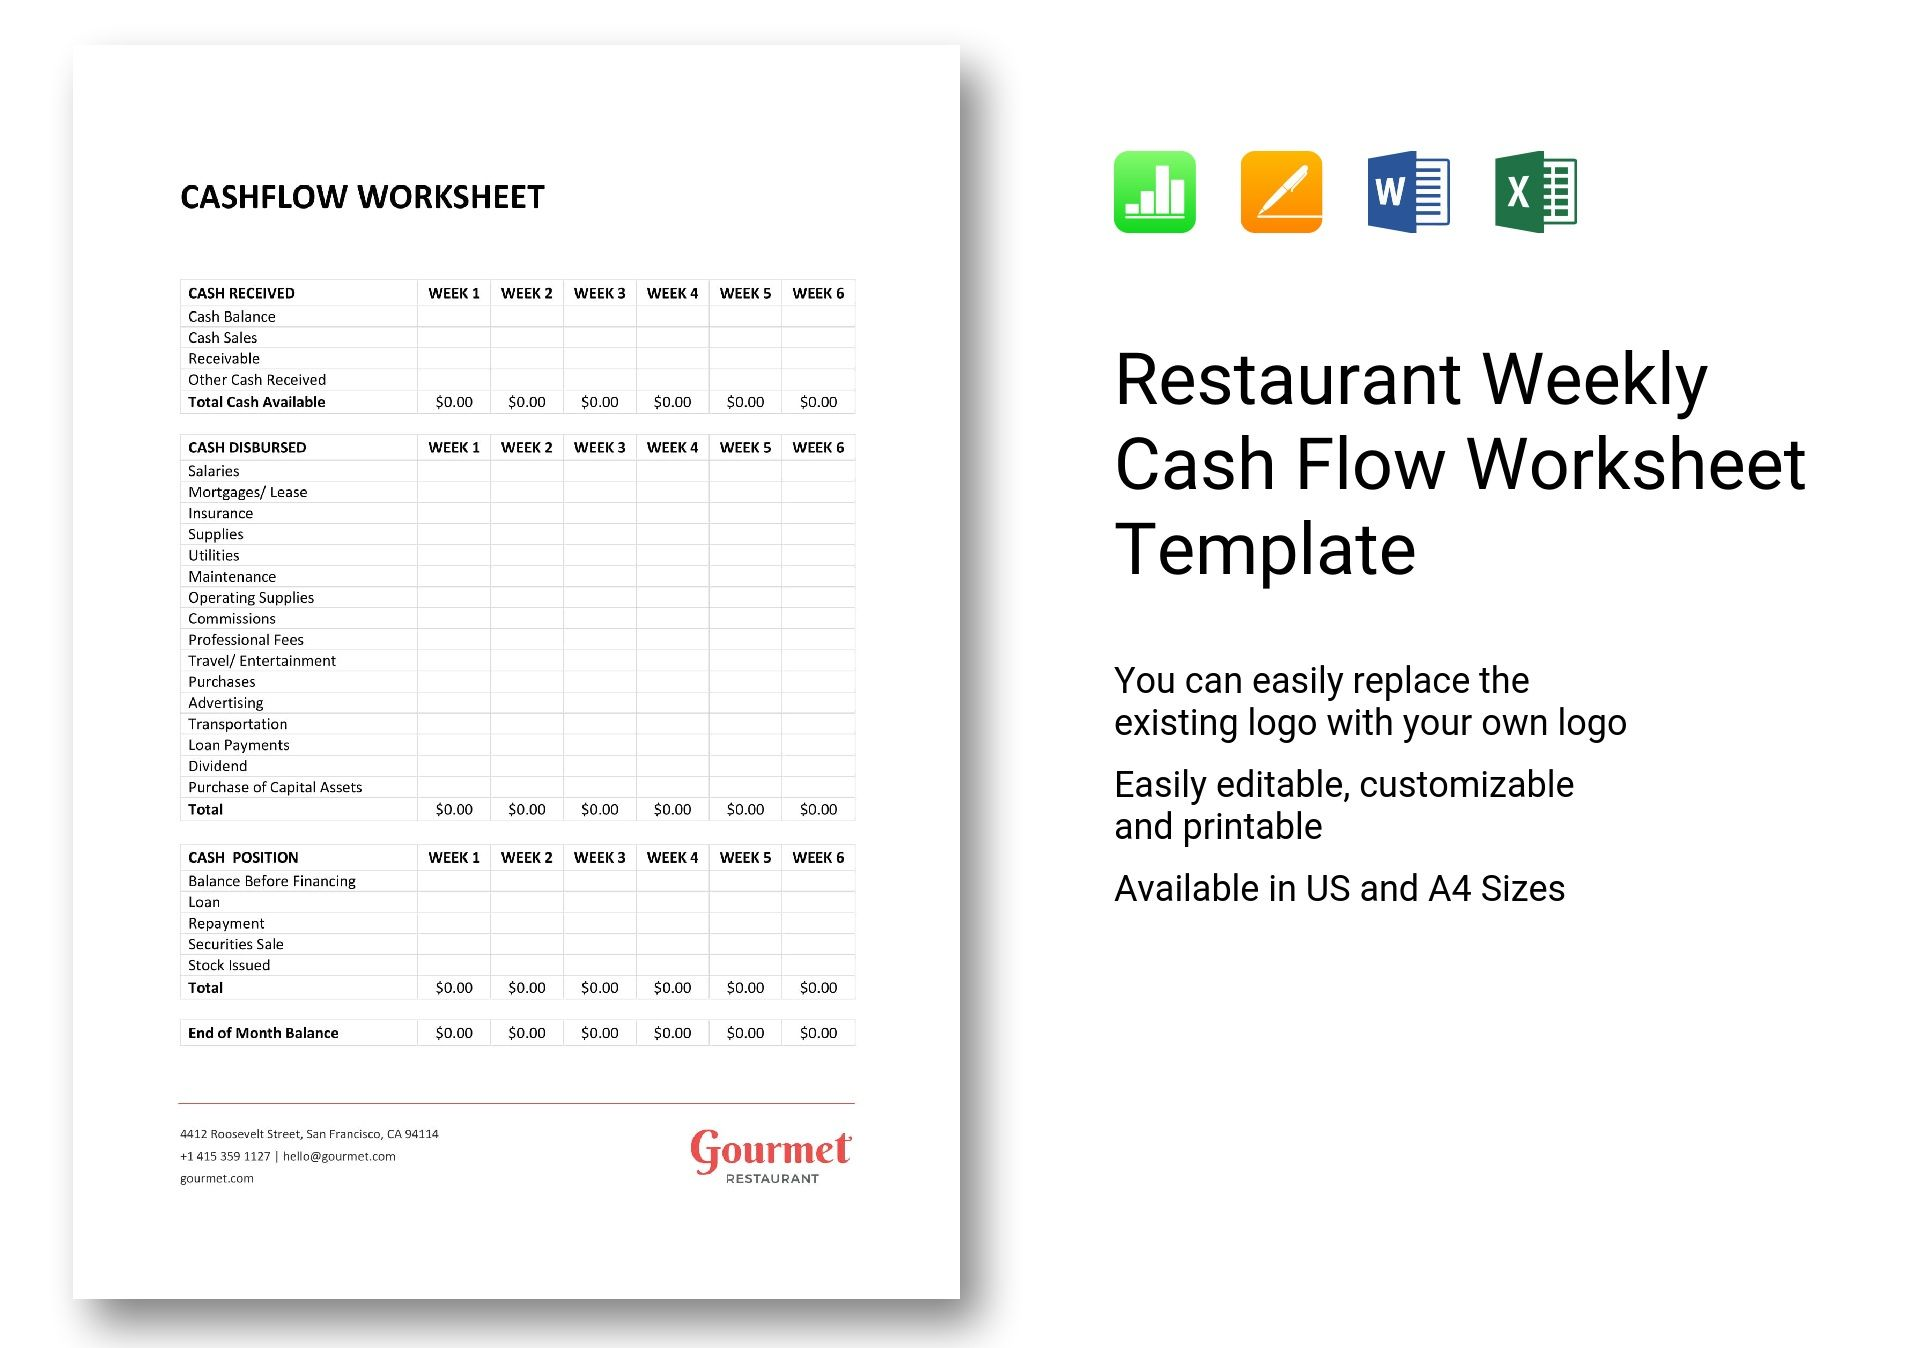 Restaurant Weekly Cash Flow Worksheet Template In Word Excel Apple Pages Numbers